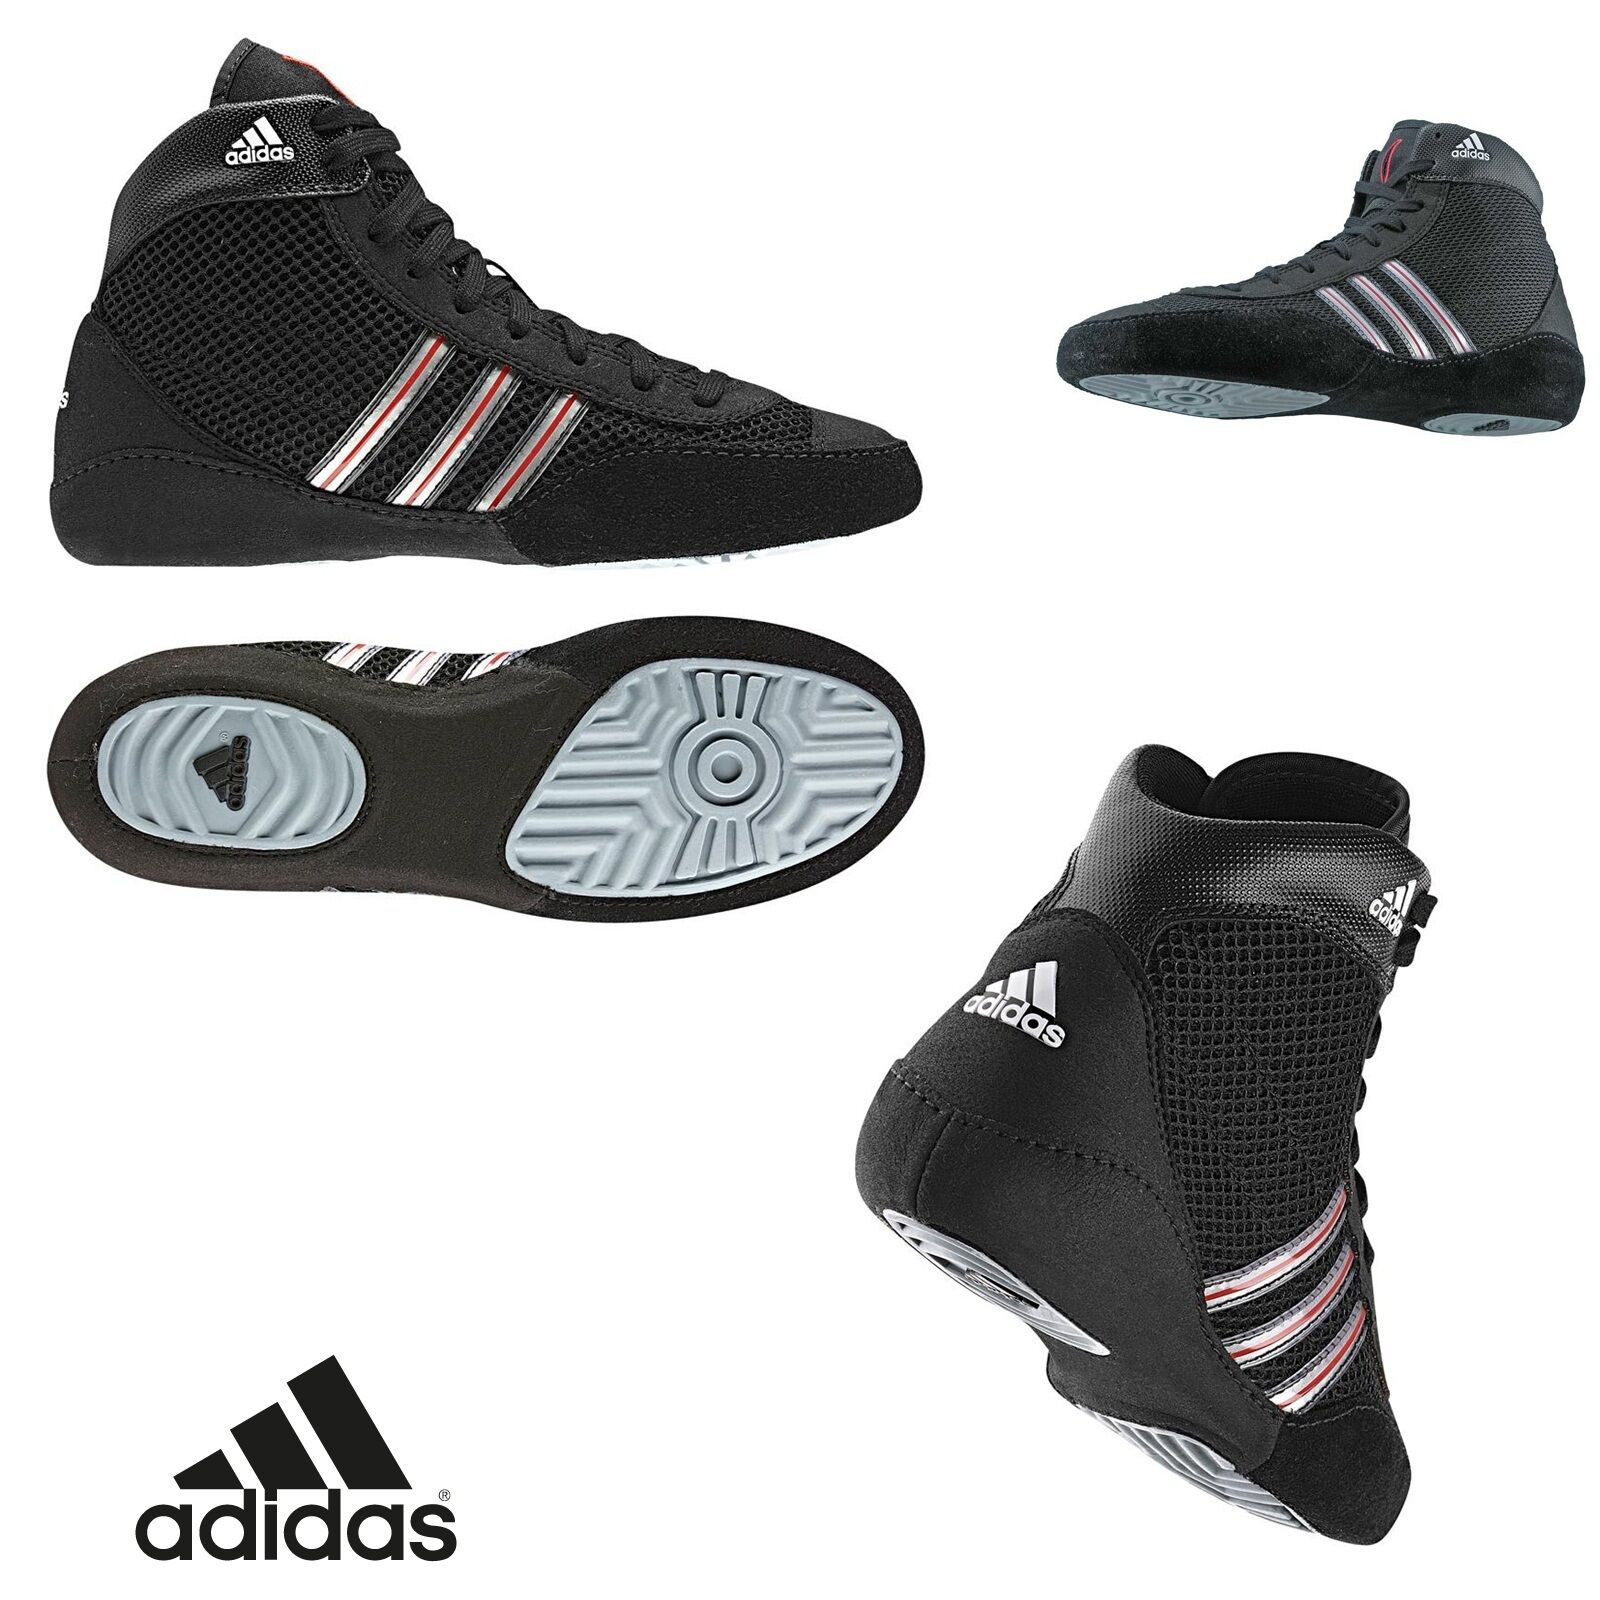 Adidas combat speed III scarpe wrestling lotta boxe submission mma fitness cross